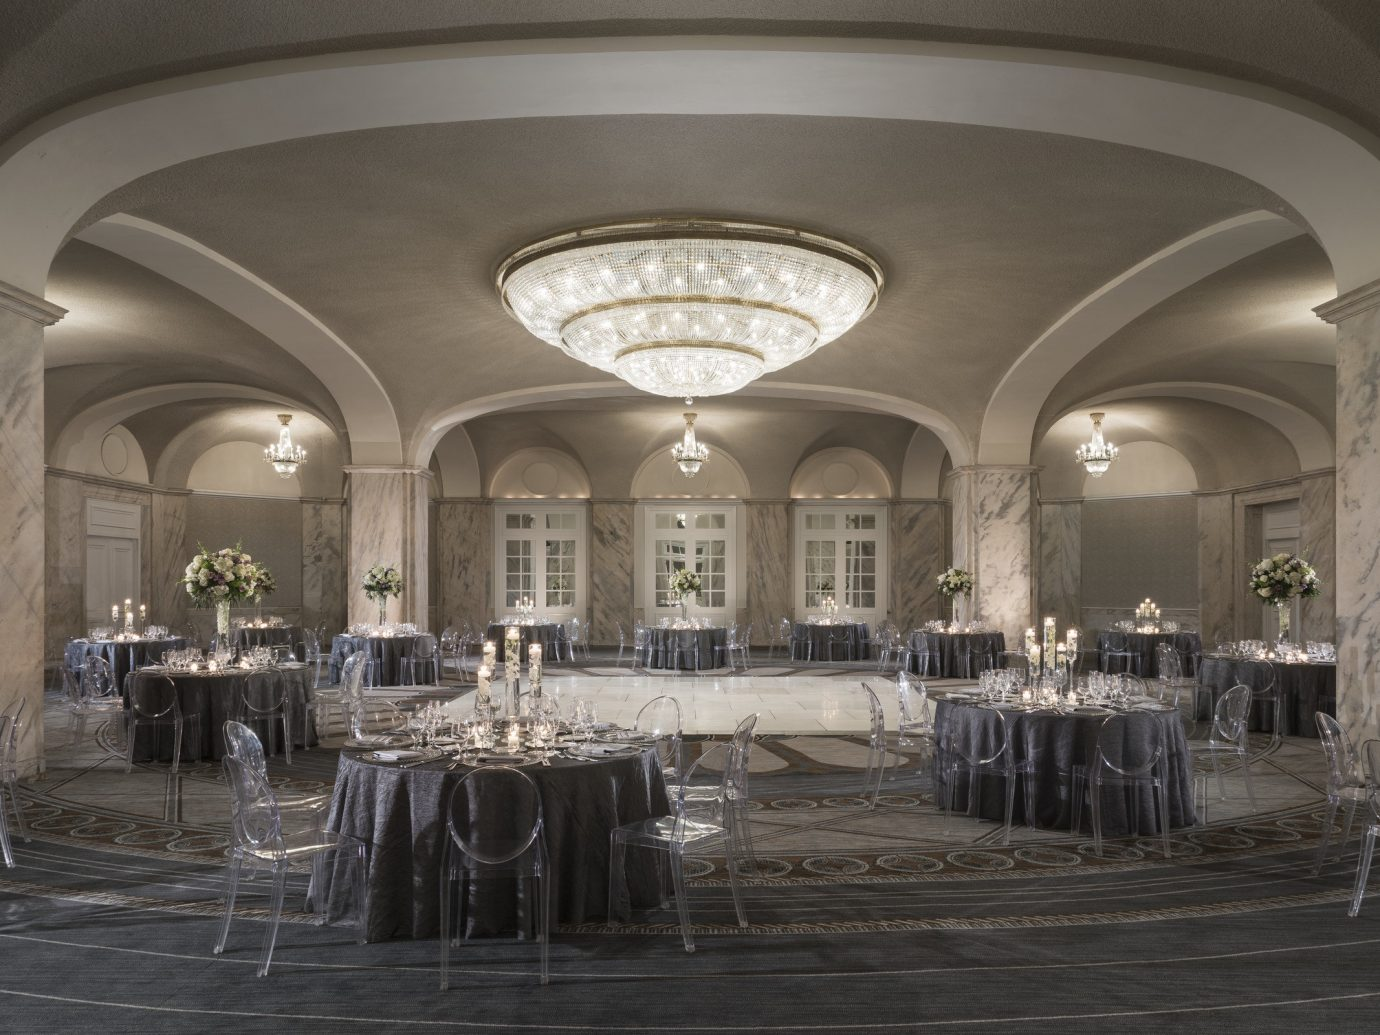 Boutique Hotels Hotels Philadelphia indoor function hall interior design ceiling aisle chapel arch ballroom place of worship furniture several